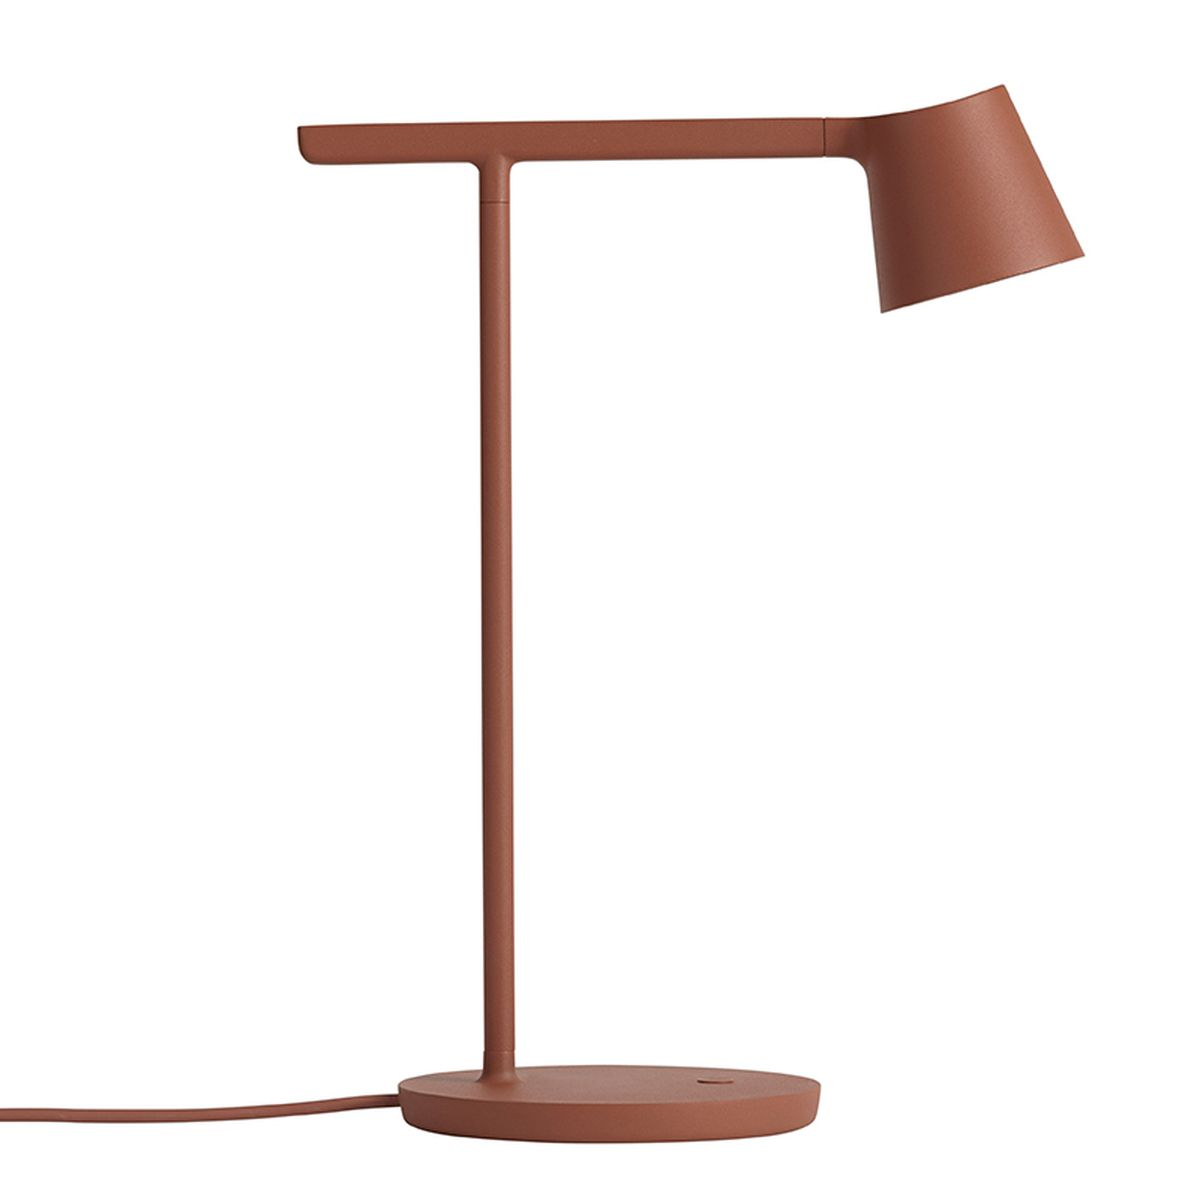 Muuto's Tip table lamp, copper brown